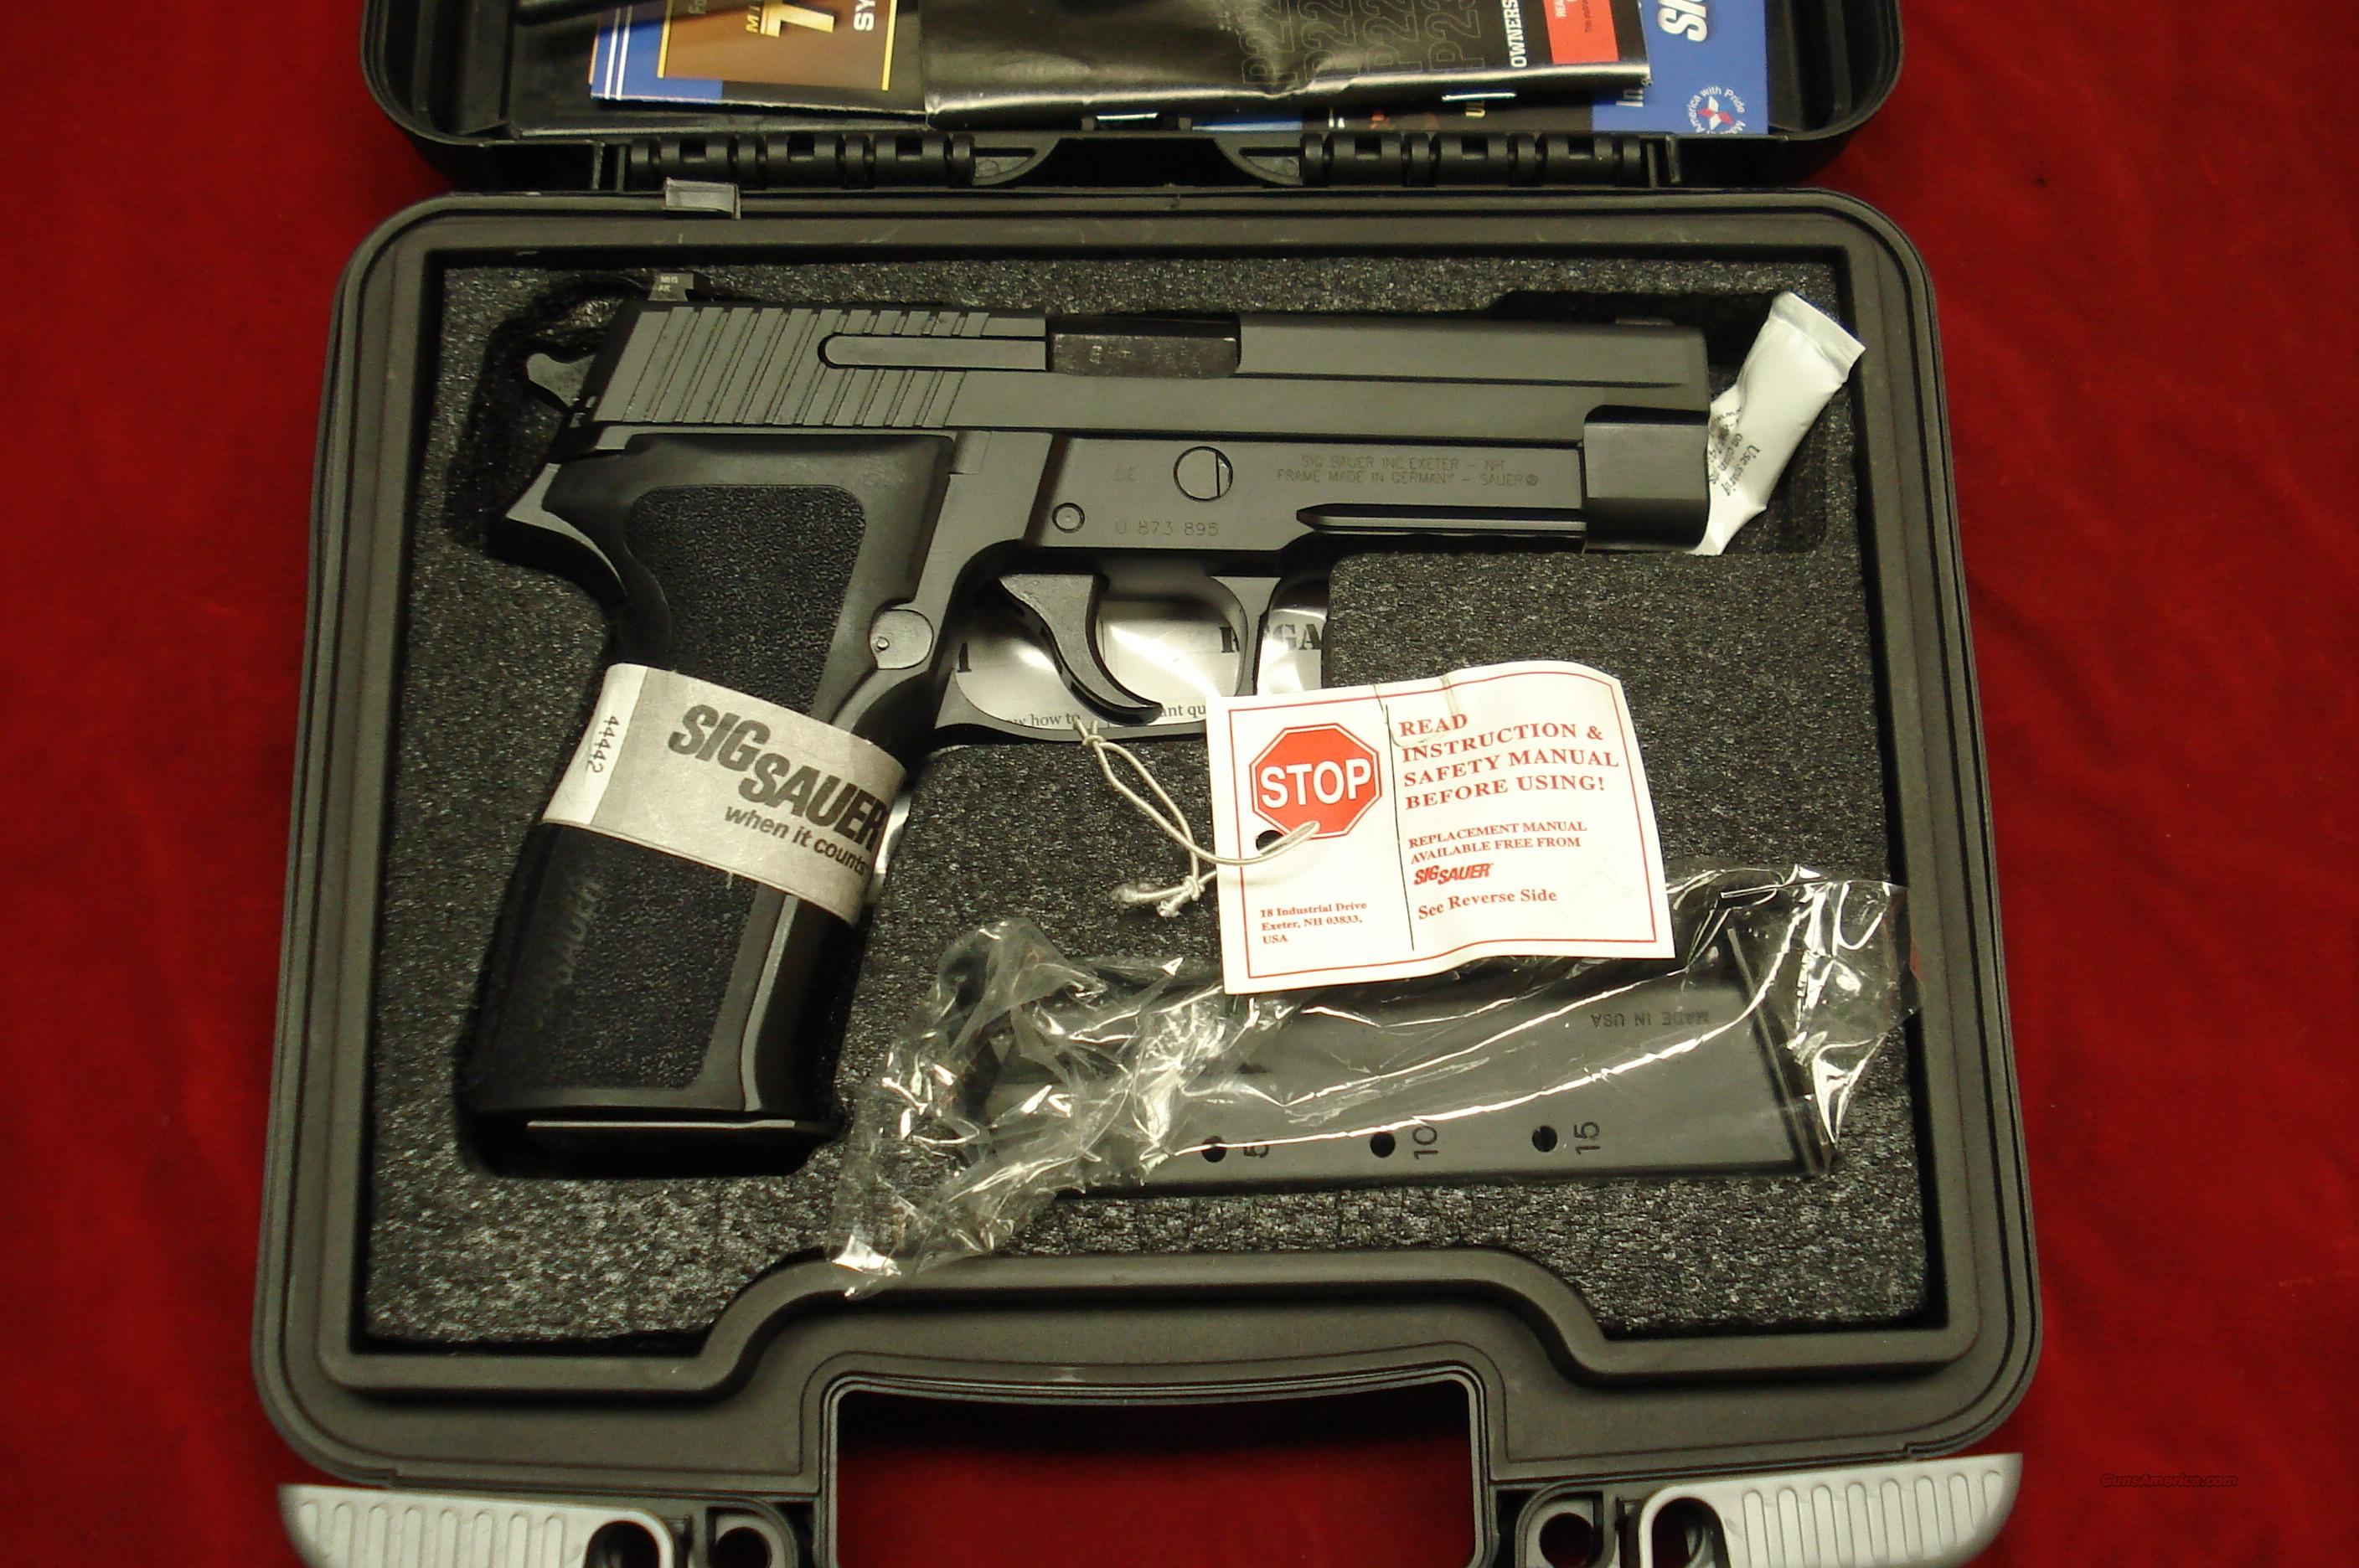 SIG SAUER P226 9MM WITH NIGHT SIGHTS NEW  Guns > Pistols > Sig - Sauer/Sigarms Pistols > P226